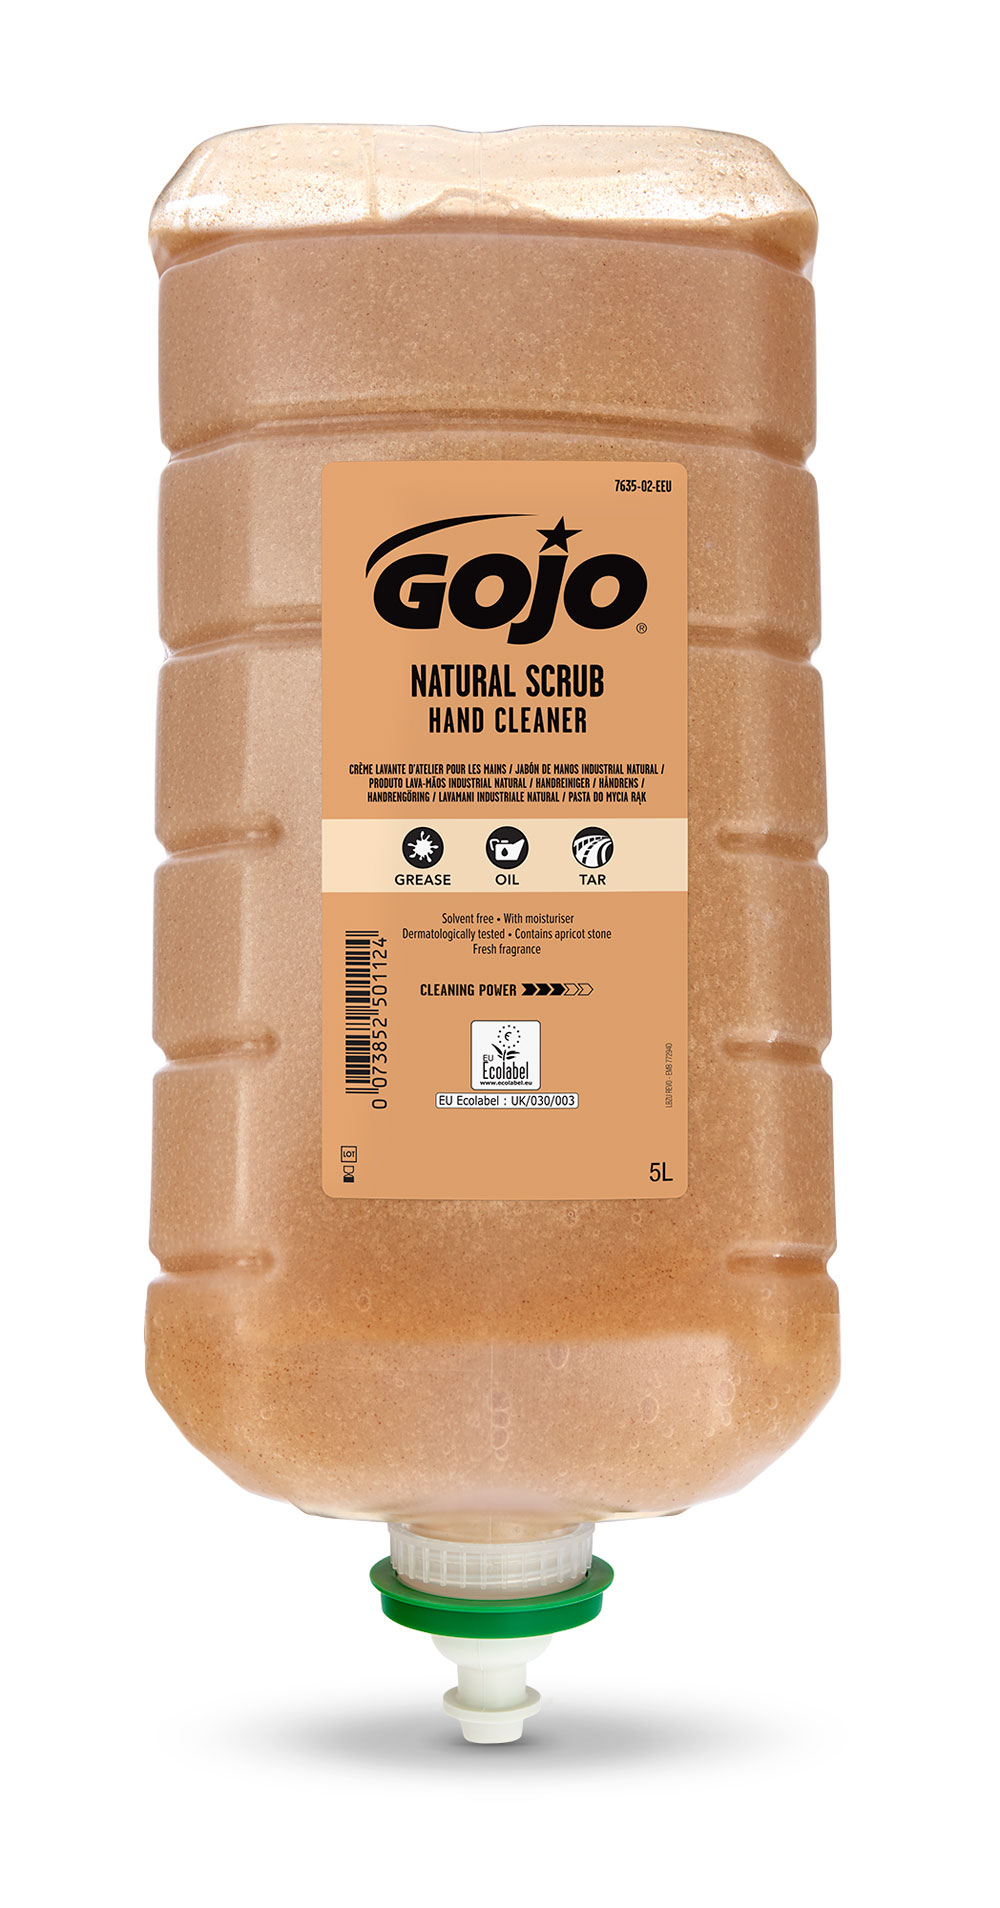 GJ7635-02 - GOJO NATURAL SCRUB HAND CLEANER 5000ML